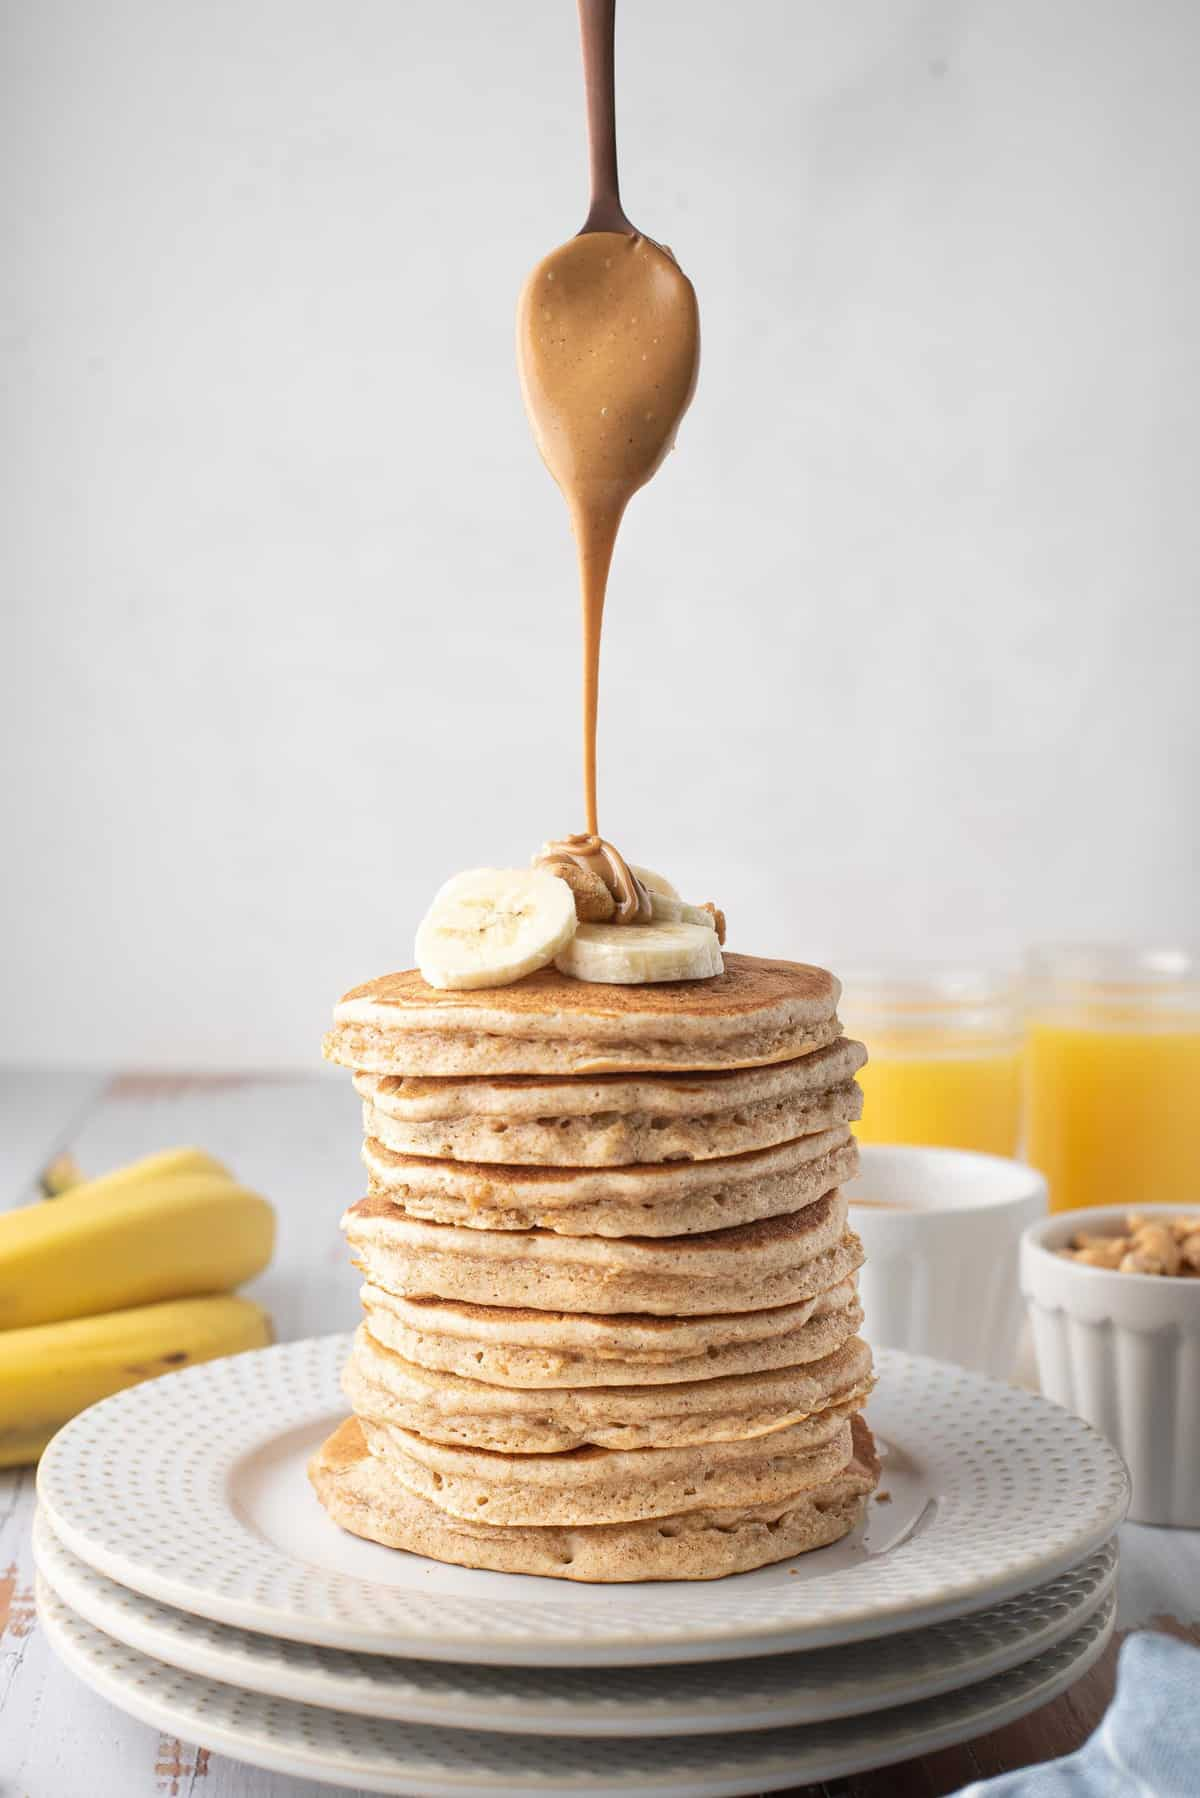 Peanut butter being drizzled from a spoon onto a very tall stack of pancakes.